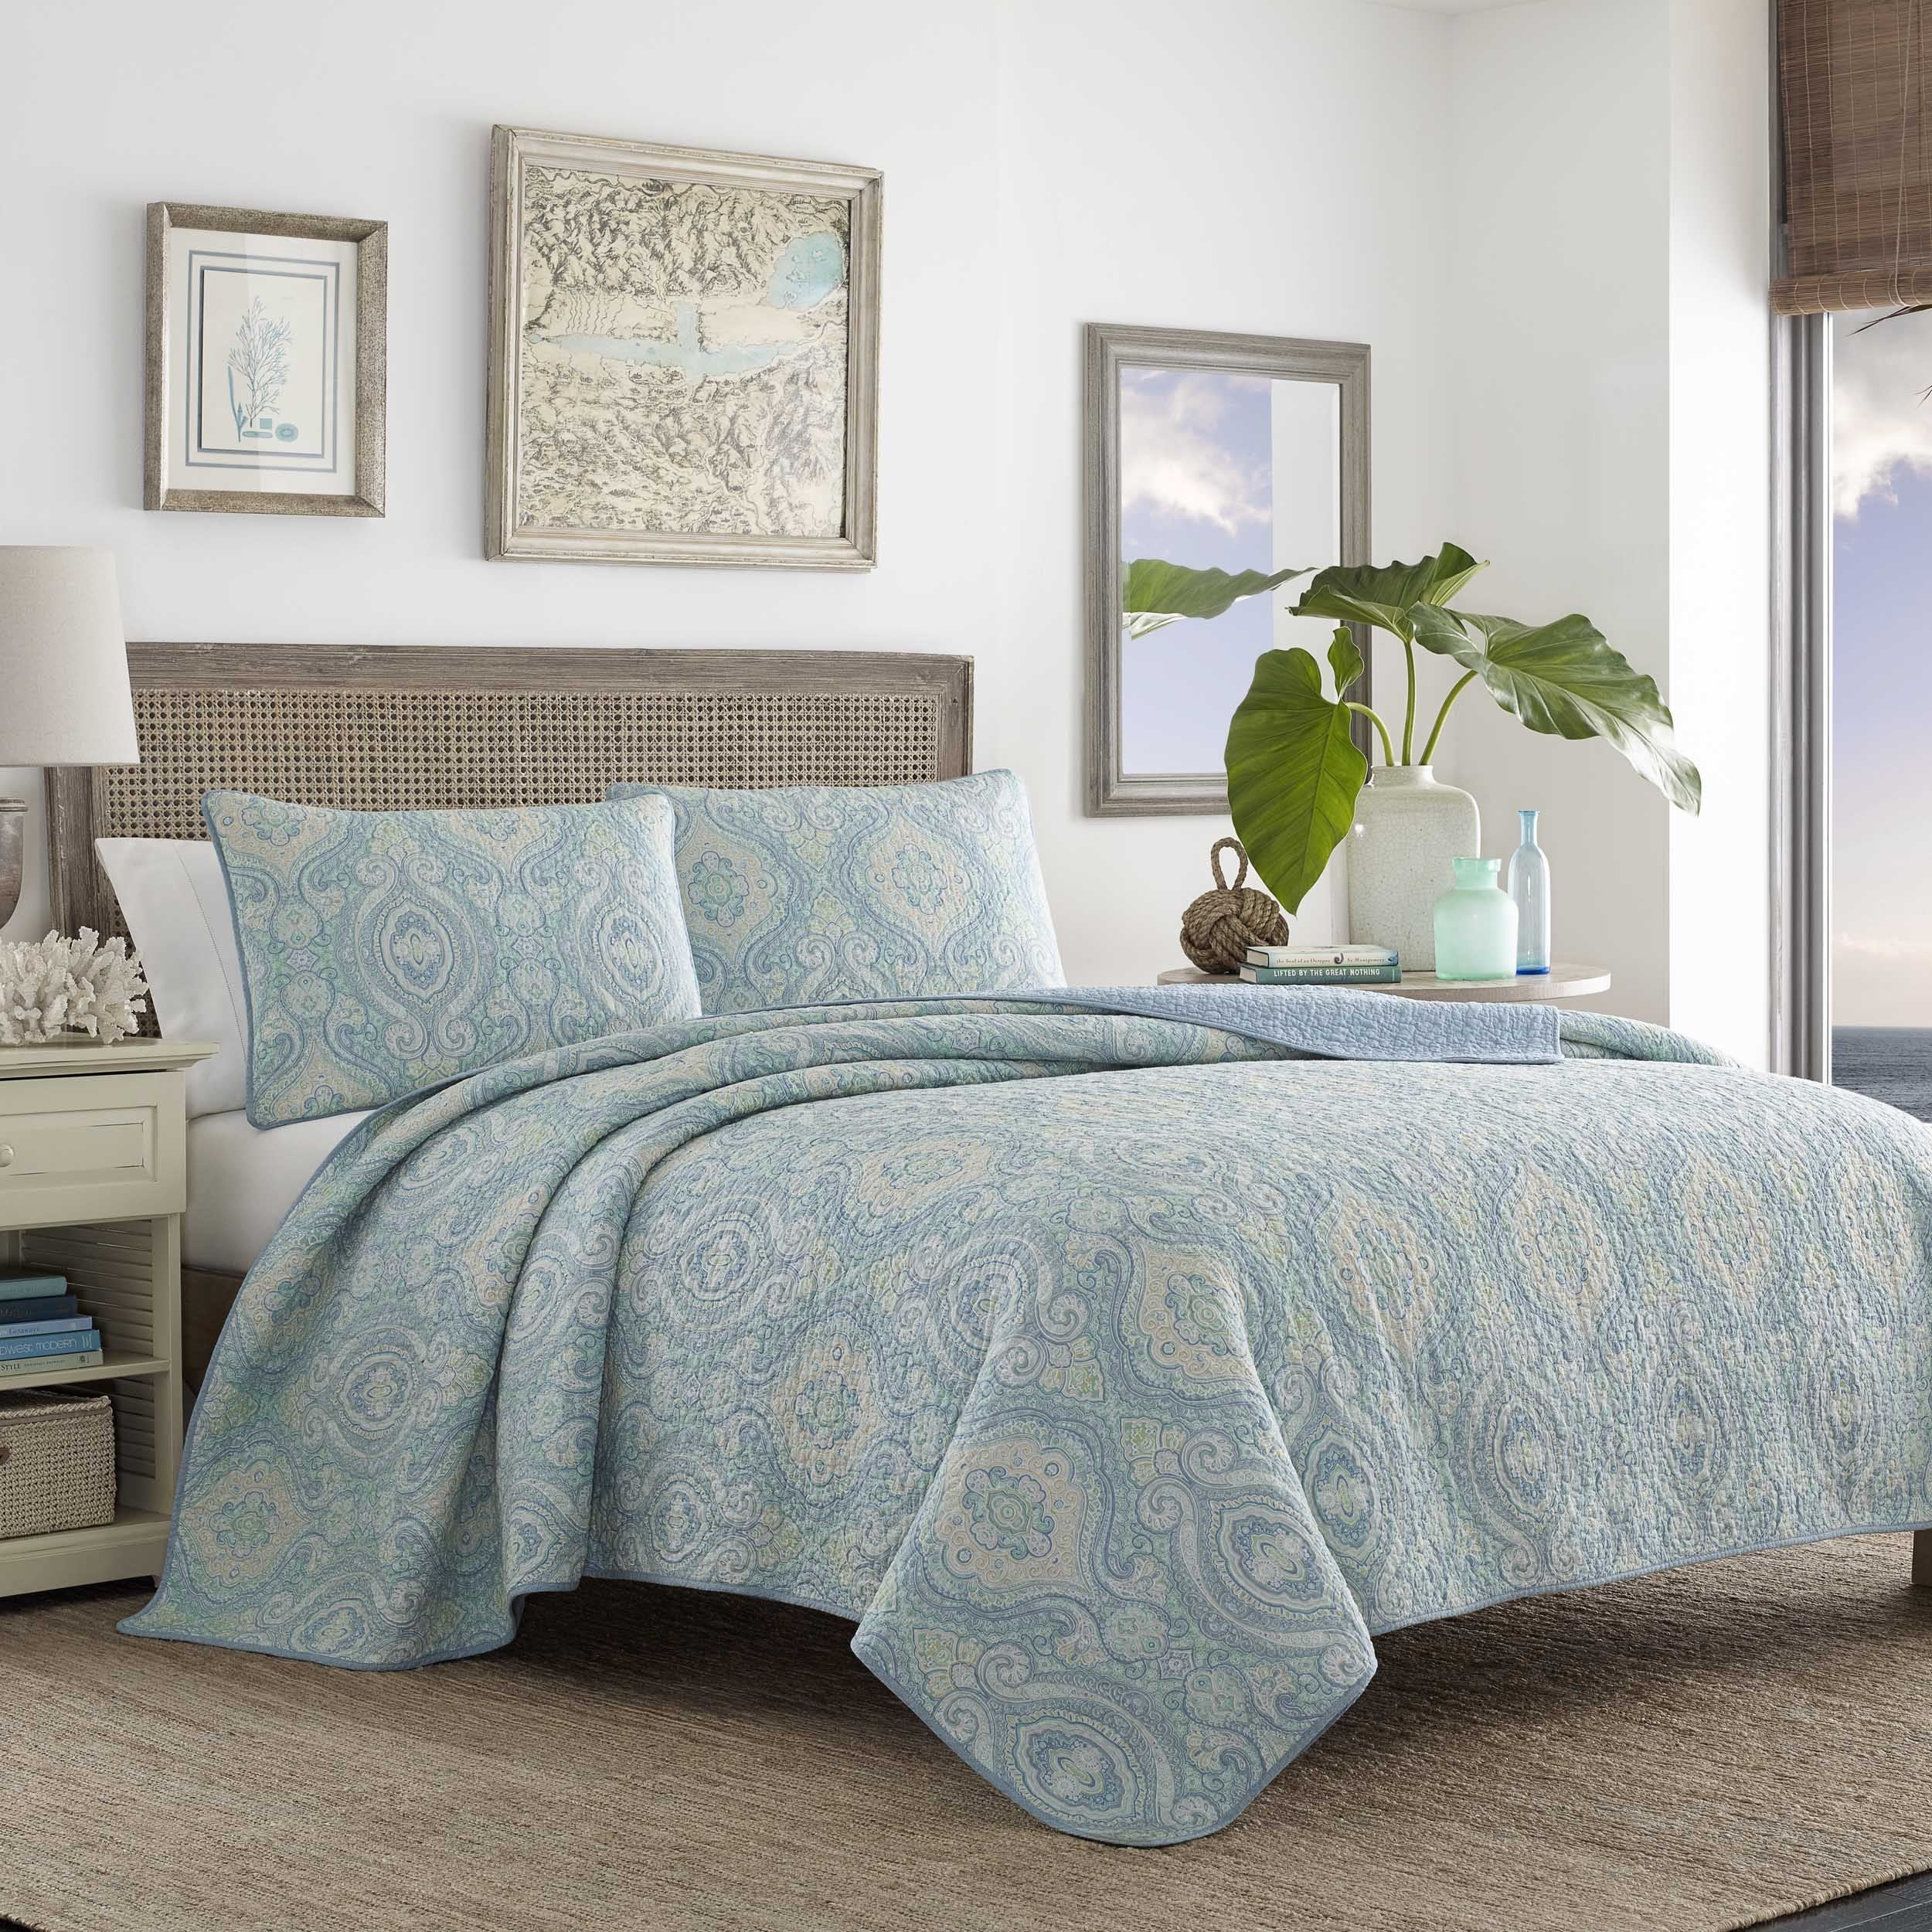 piped set king bedding p floral rio tommy rectangle comforter pillow by janeiro vermillion tropical bahama de